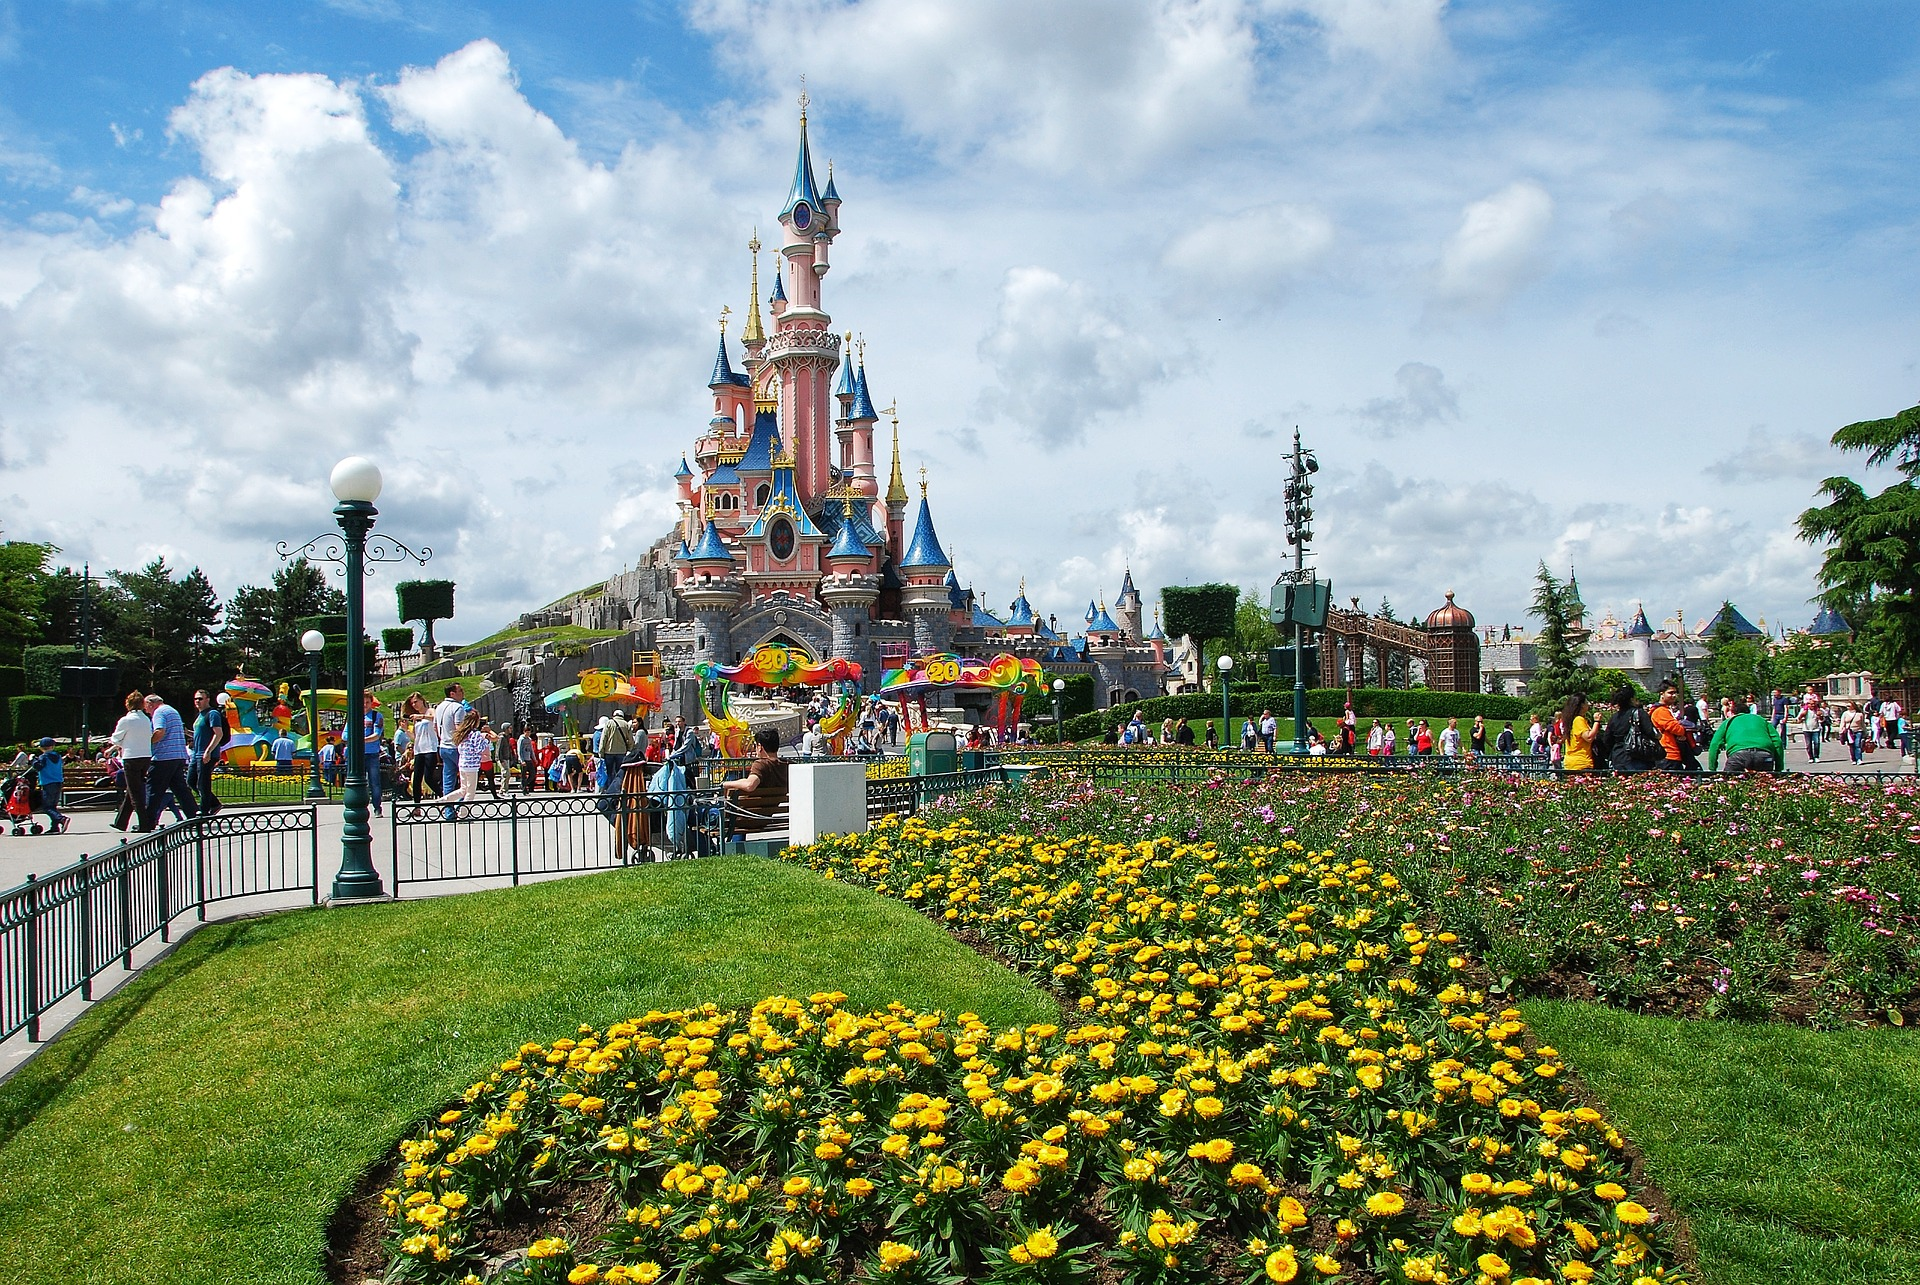 12/Photos-visite-paris/disneyland-3653617_1920.jpg